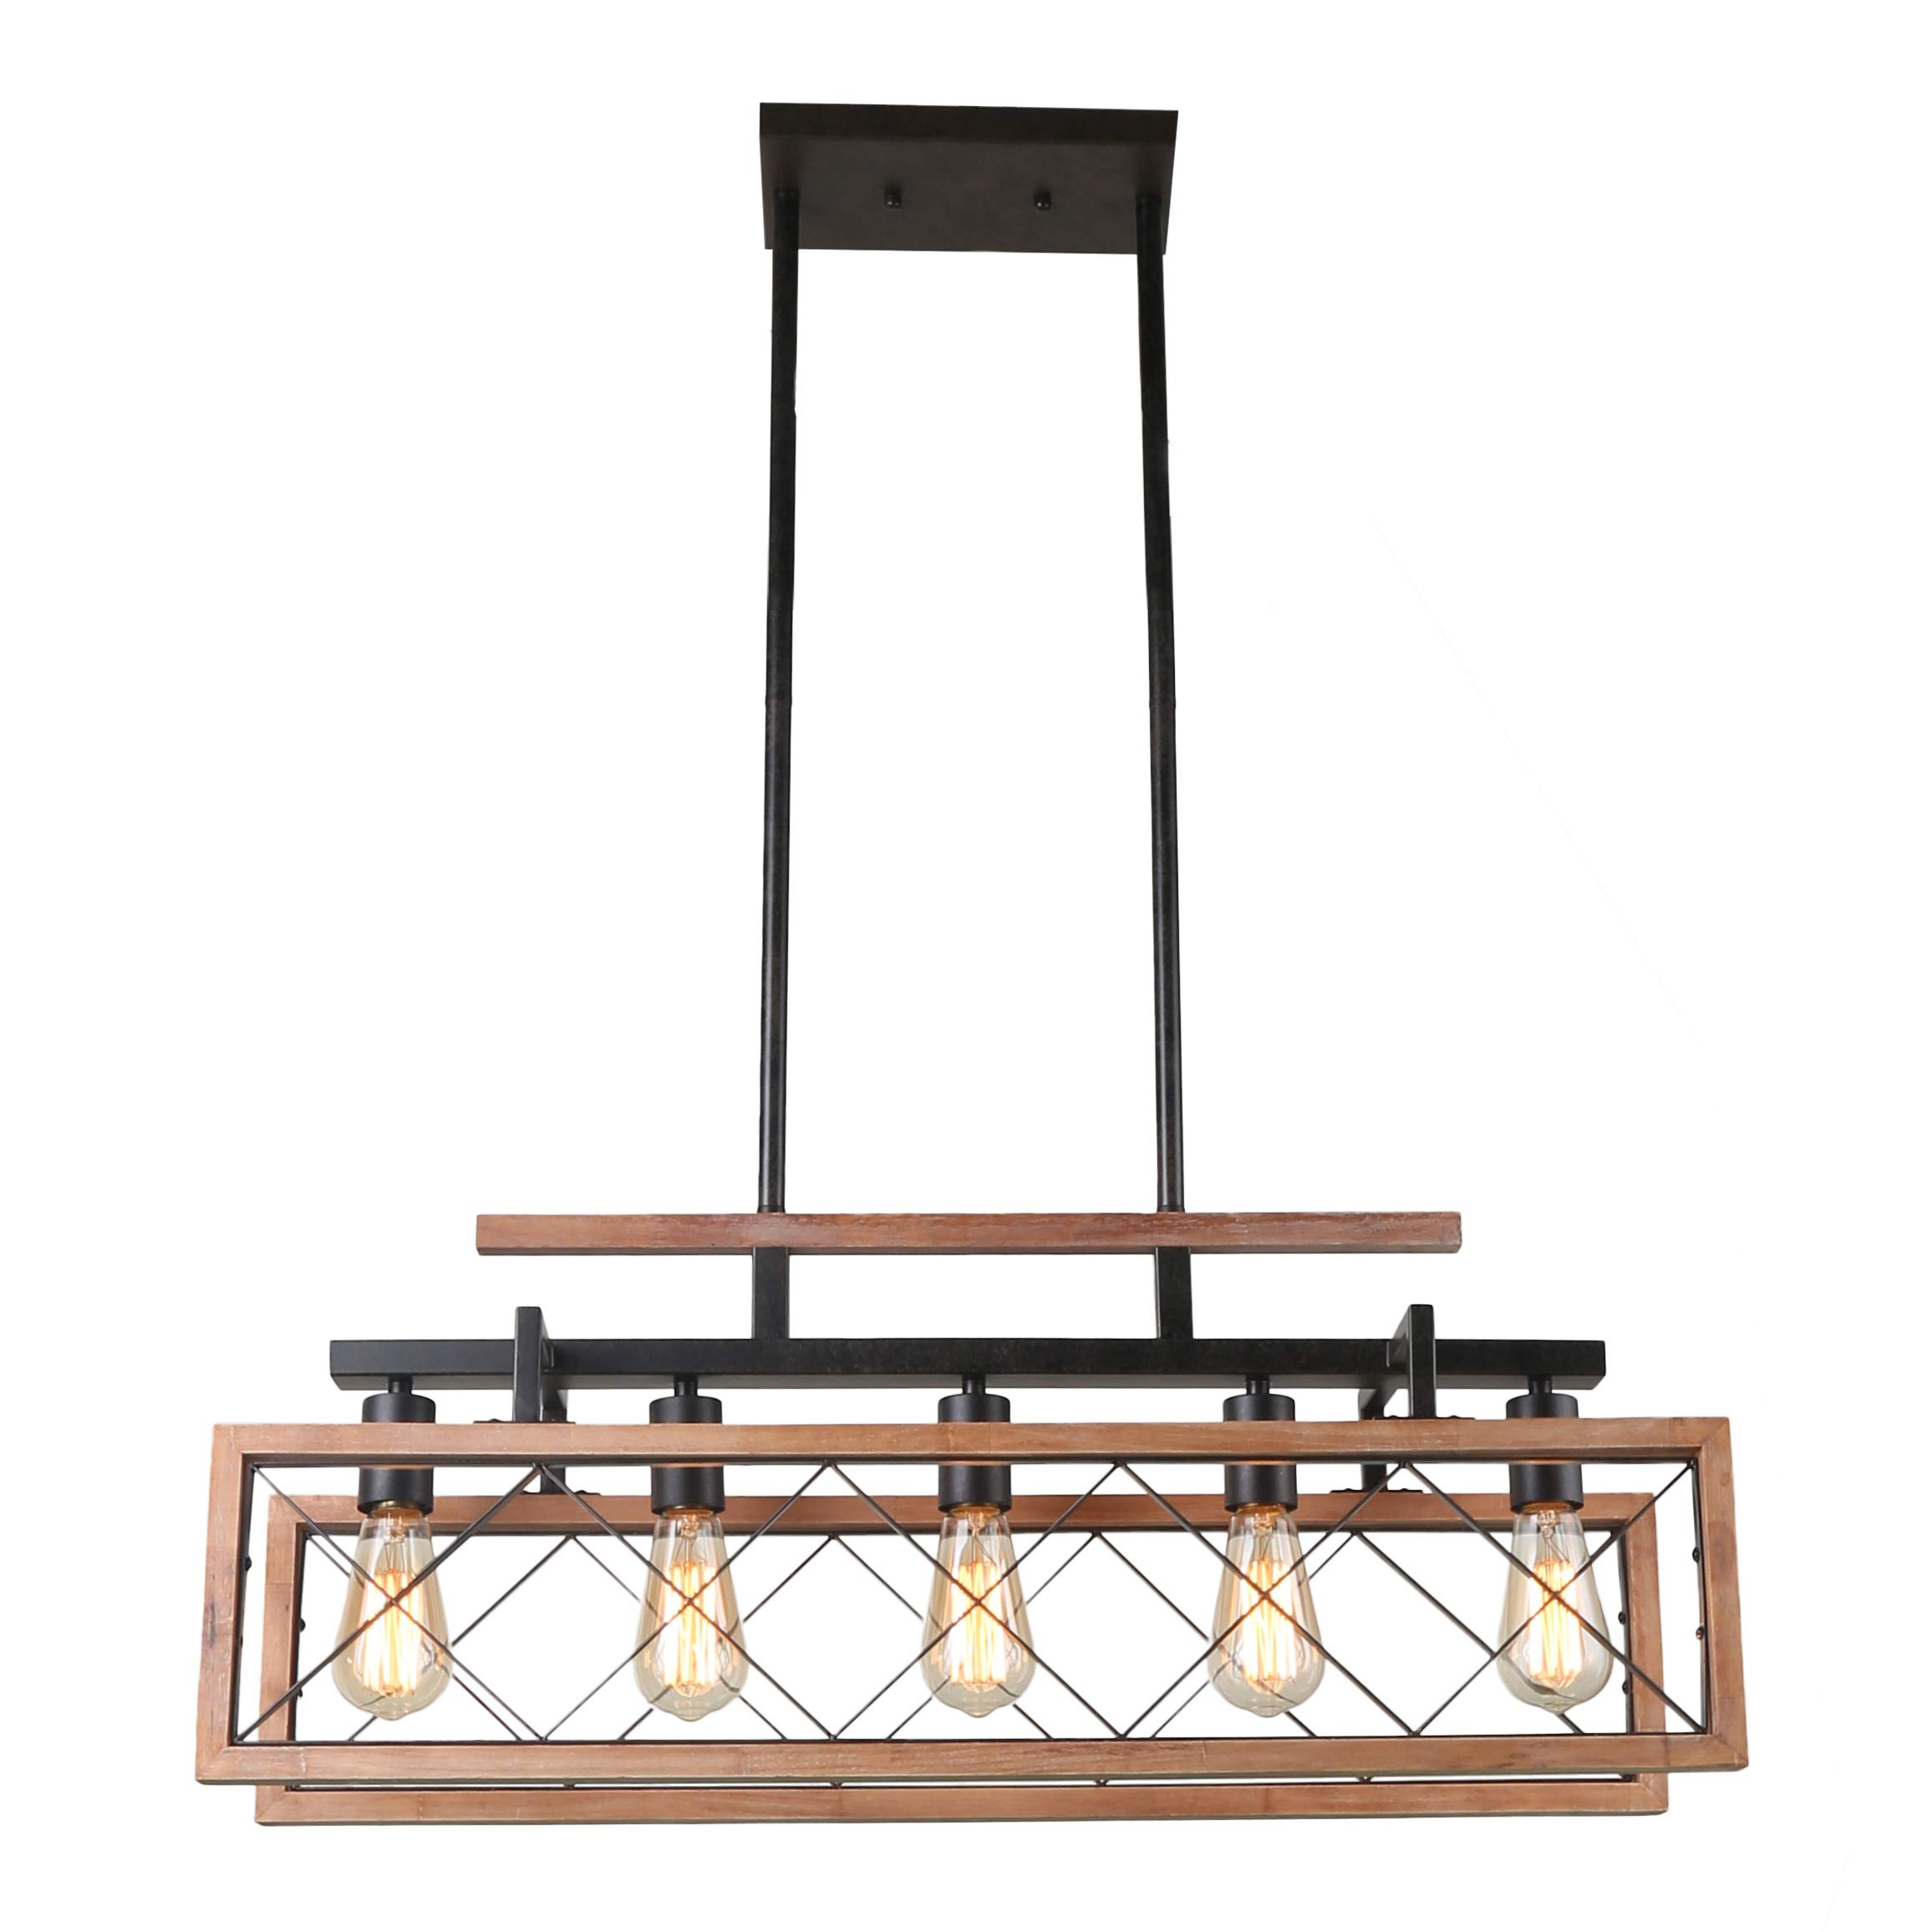 Giluta Rustic Wooden Chandelier Kitchen Island Light Farmhouse Chandelier Hanging Pendant Lighting Fixture Vintage Ceiling Light 5 Lights Ideal for Living Room Pool Table or Foyer (C0060) by Giluta (Image #4)